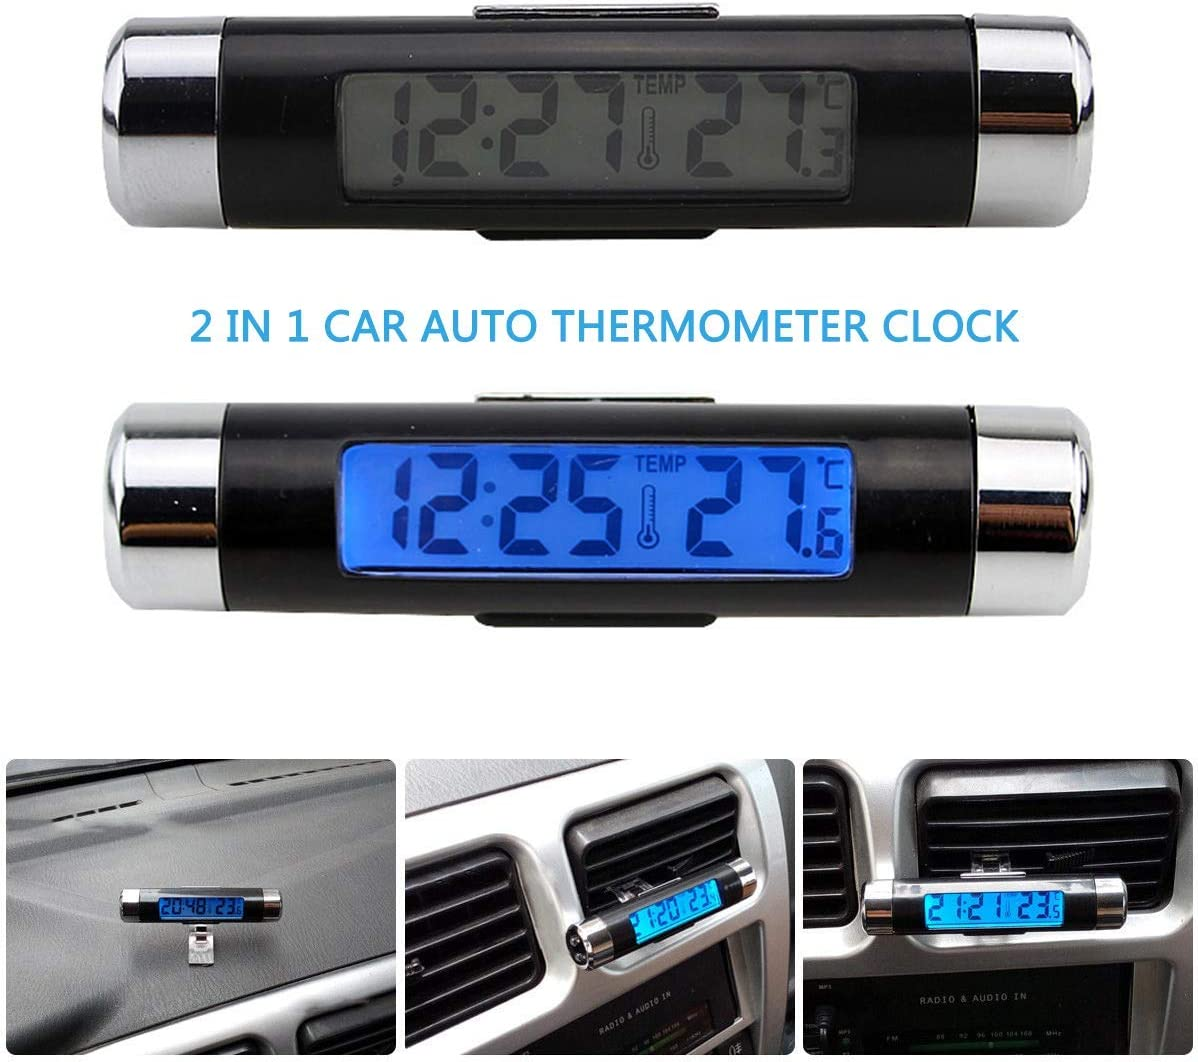 Car Temperature Clock Universal Auto Dashboard Digital Clocks with Blacklight And LCD Screen Adjustable Vehicle Temperature Gauge Support 12h/24h Transformation Modes-Black+Silver